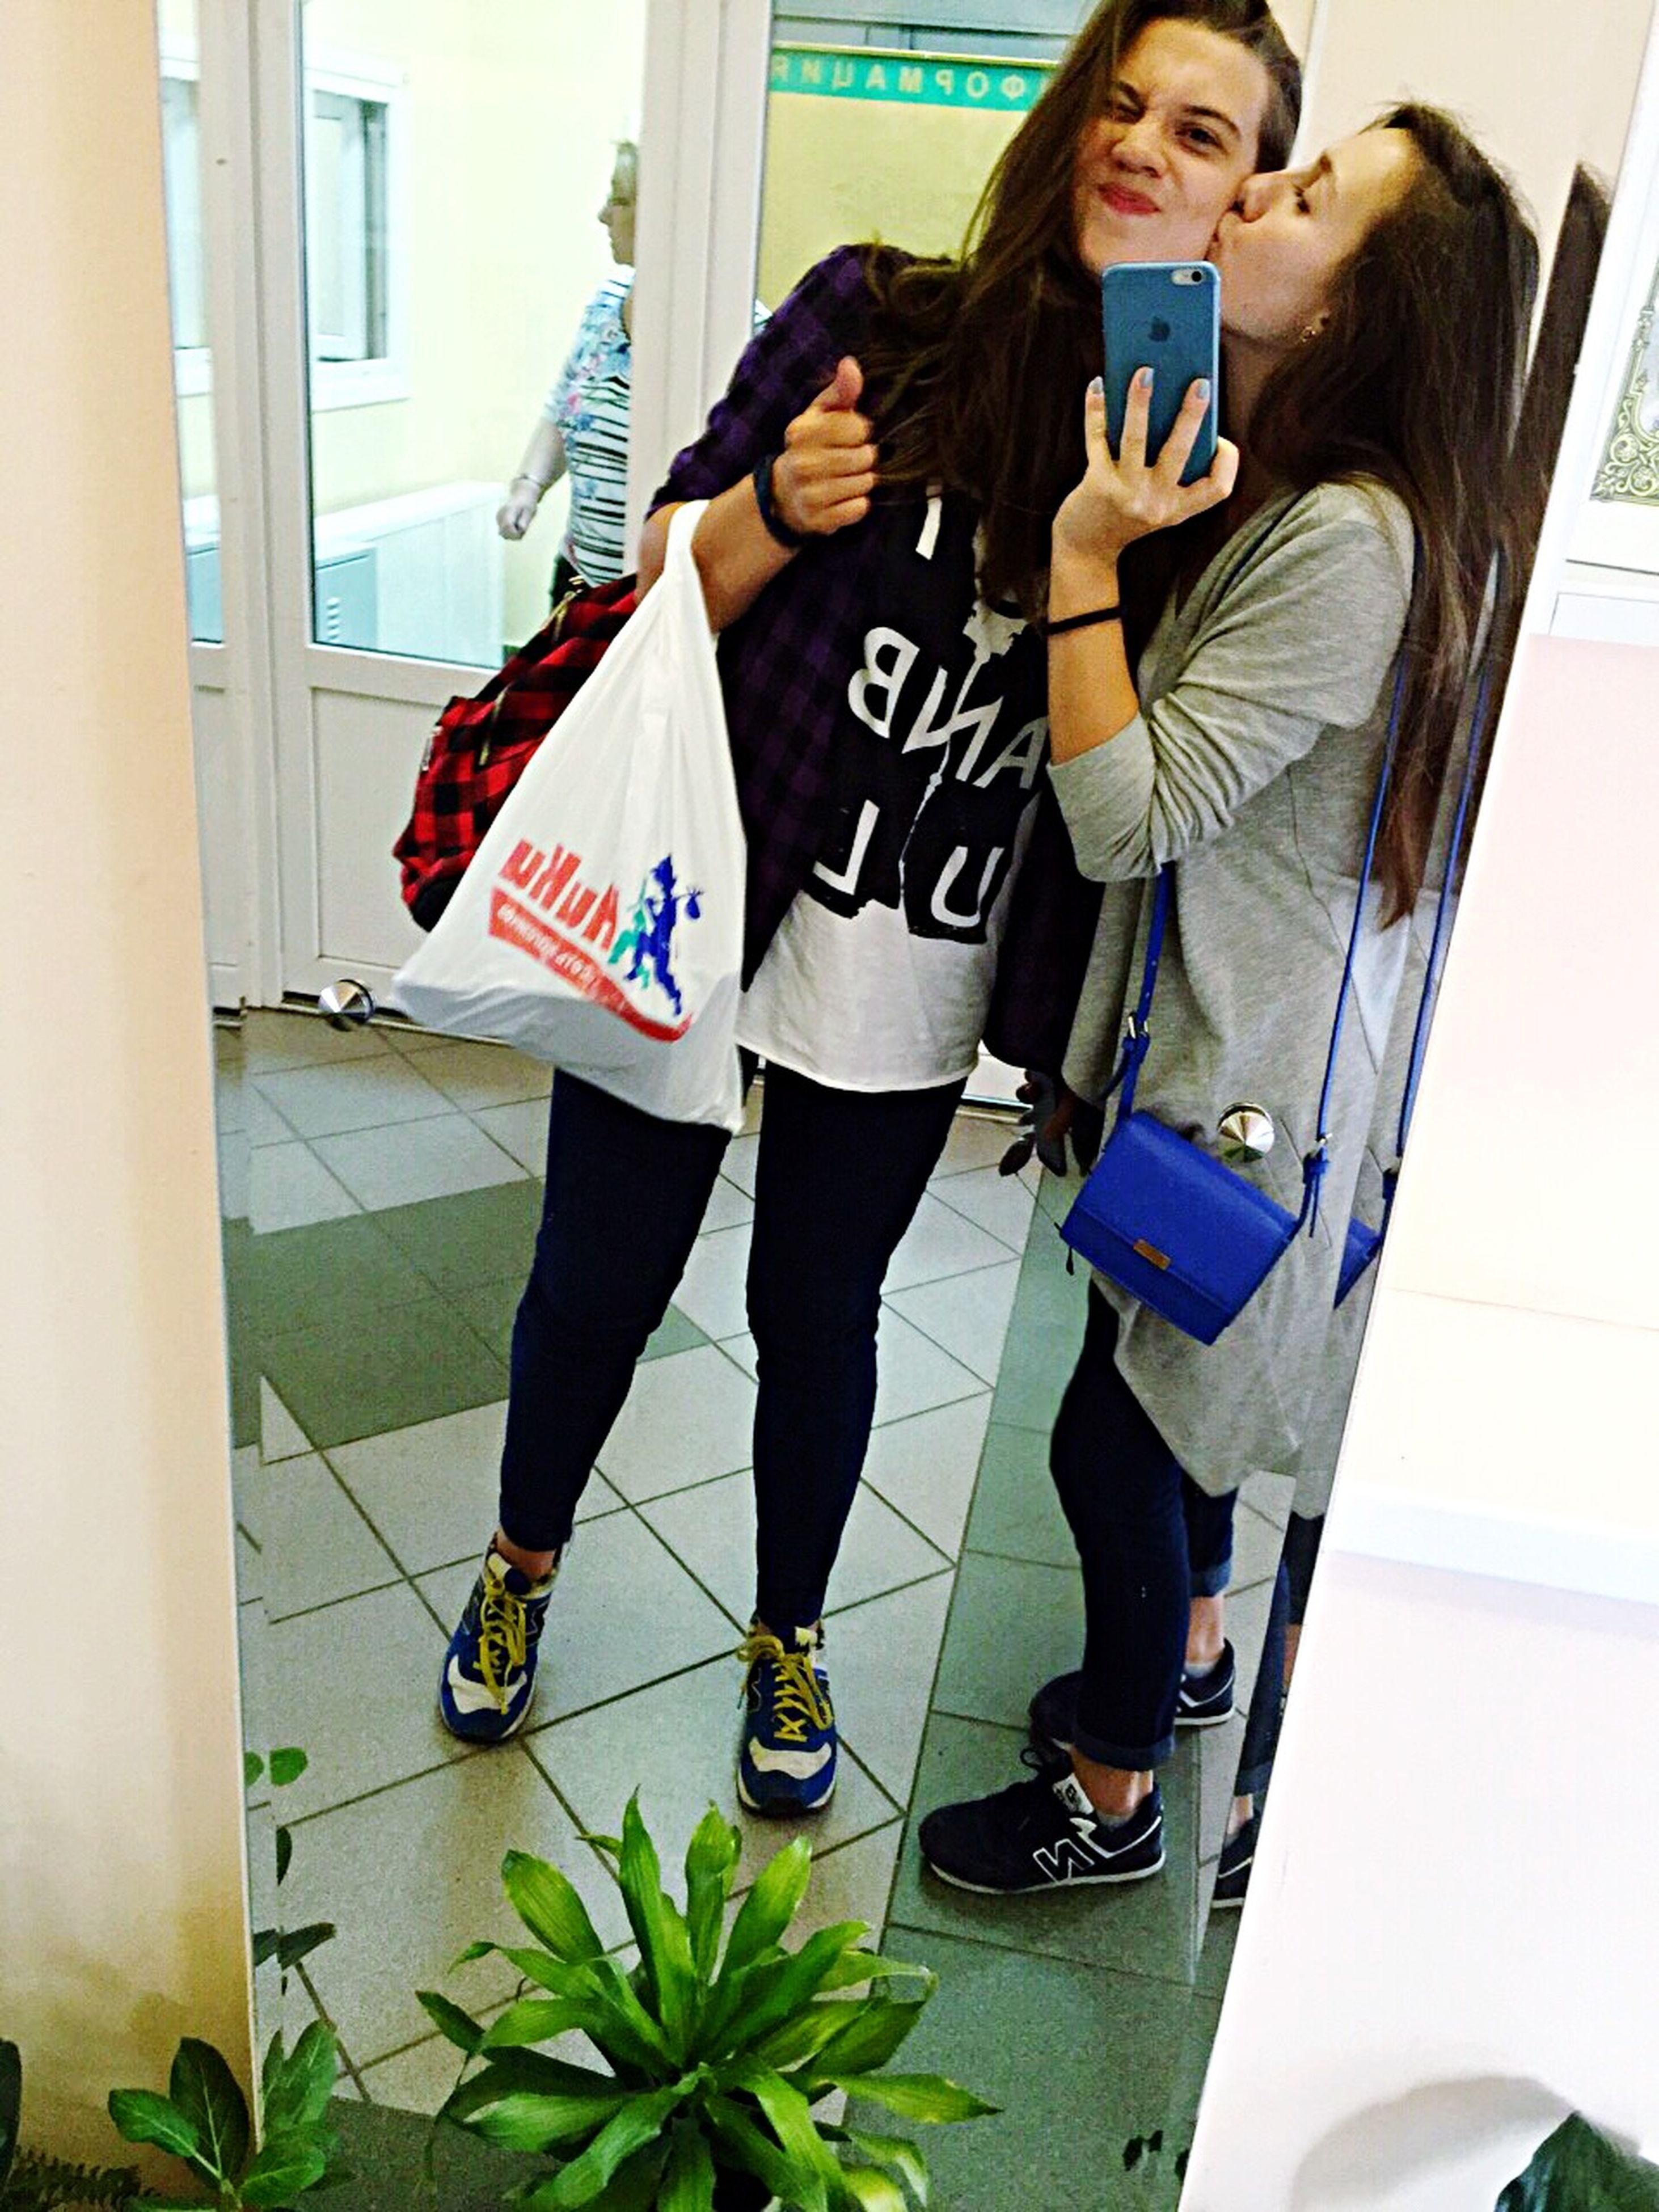 lifestyles, young adult, casual clothing, leisure activity, full length, young women, person, standing, front view, indoors, fashion, built structure, three quarter length, mirror, architecture, sitting, day, looking at camera